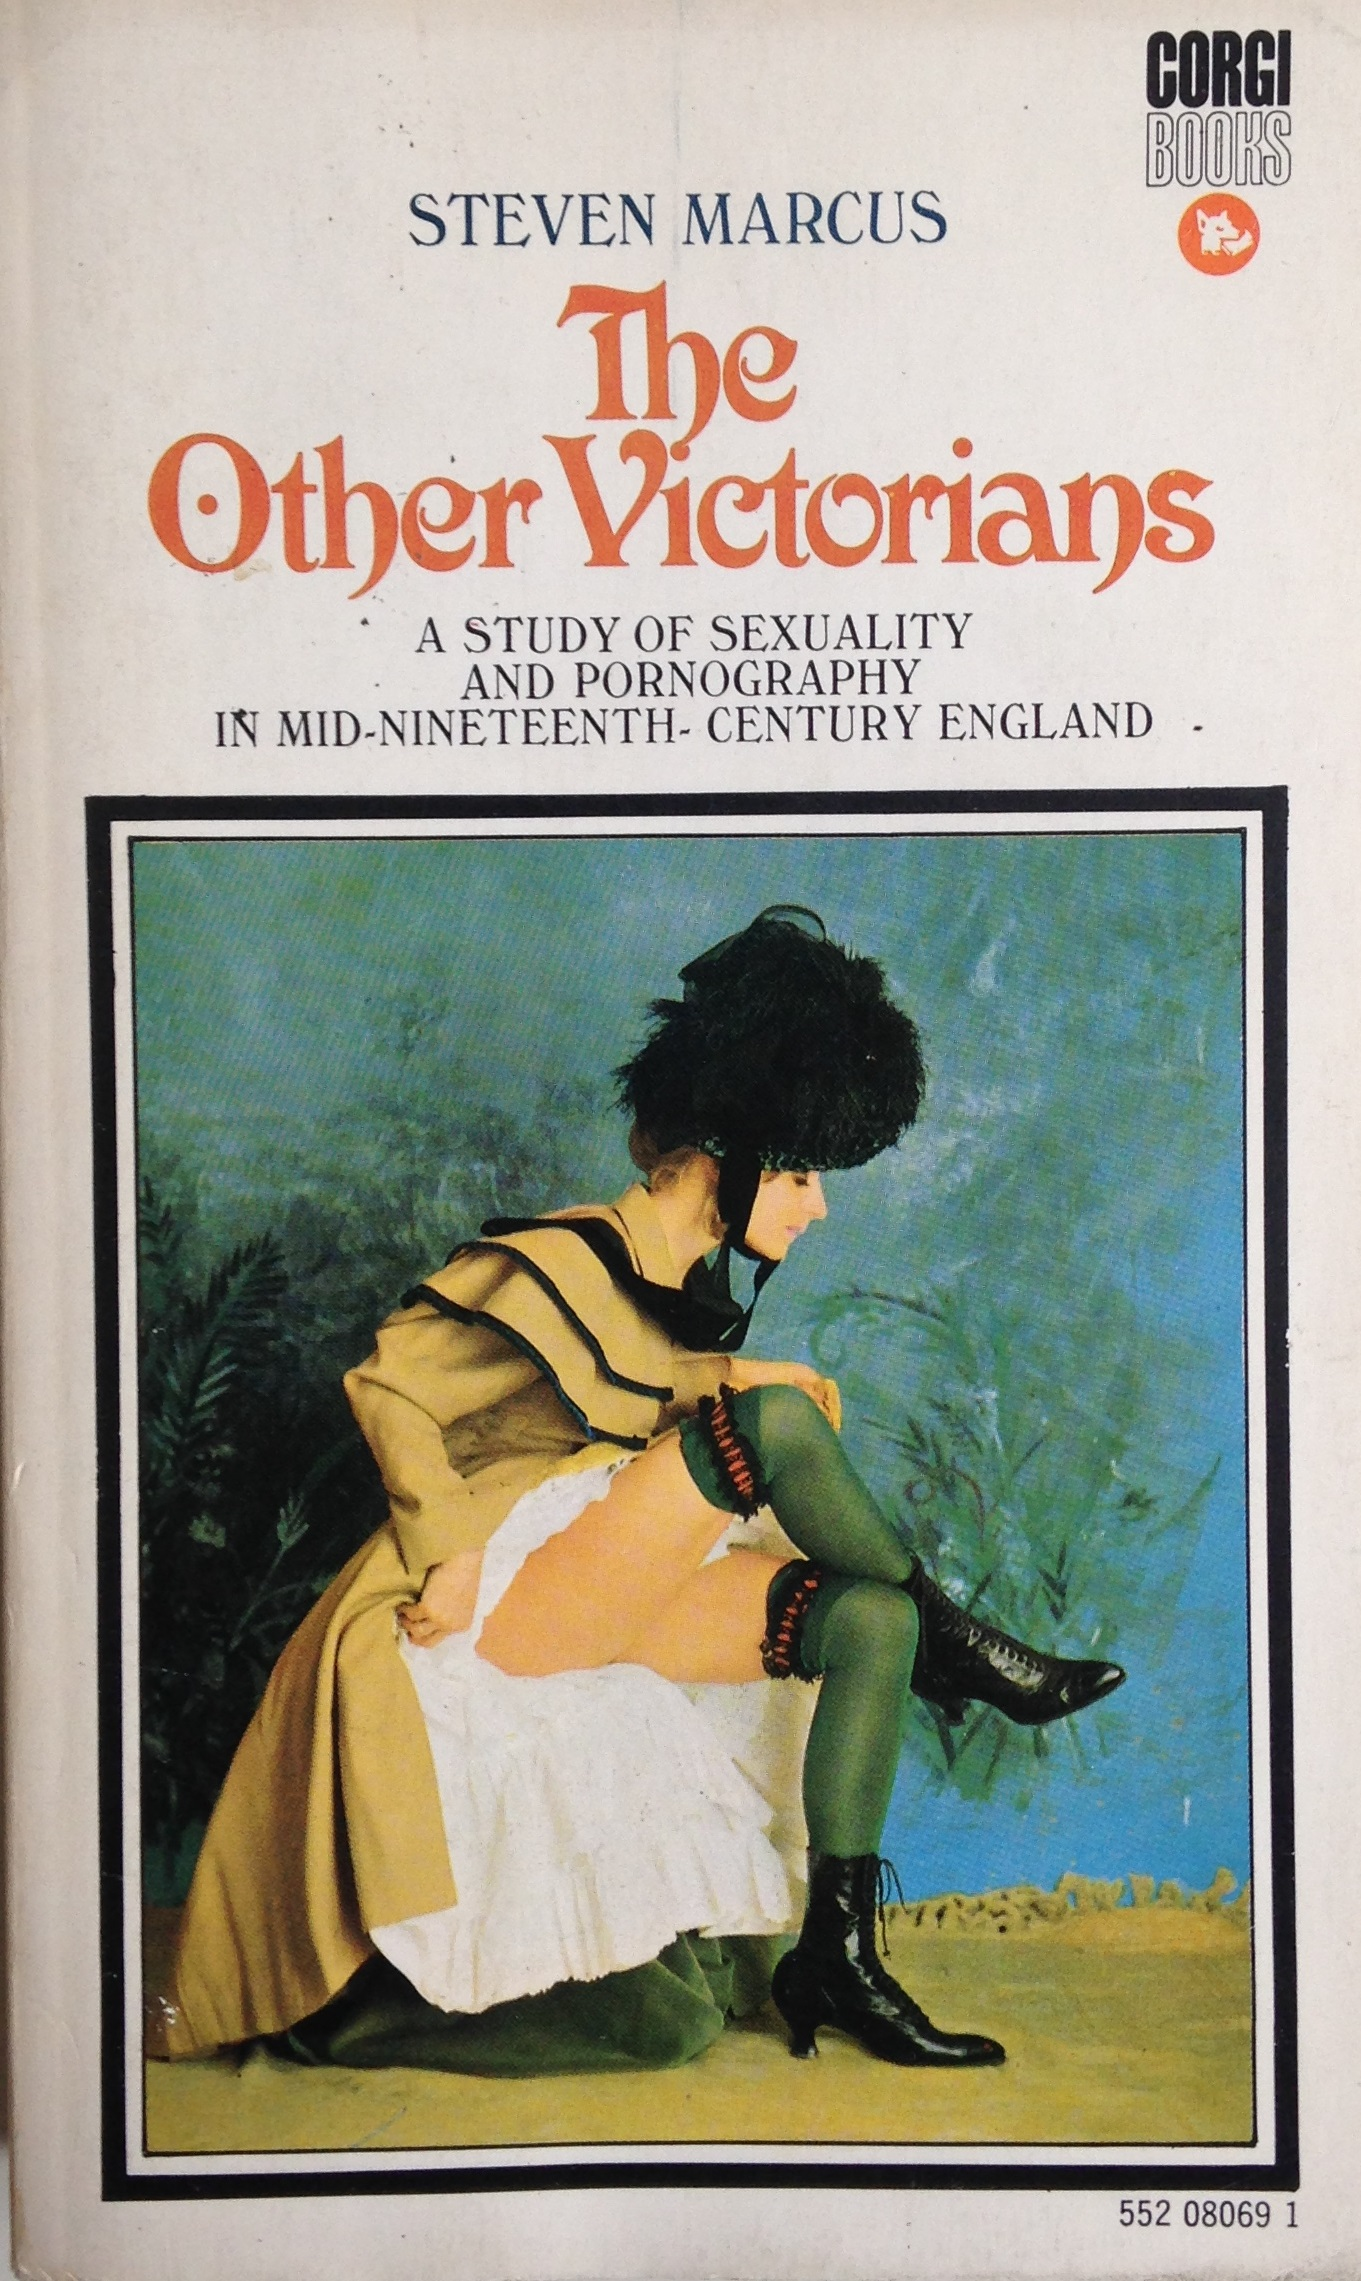 The Other Victorians cover